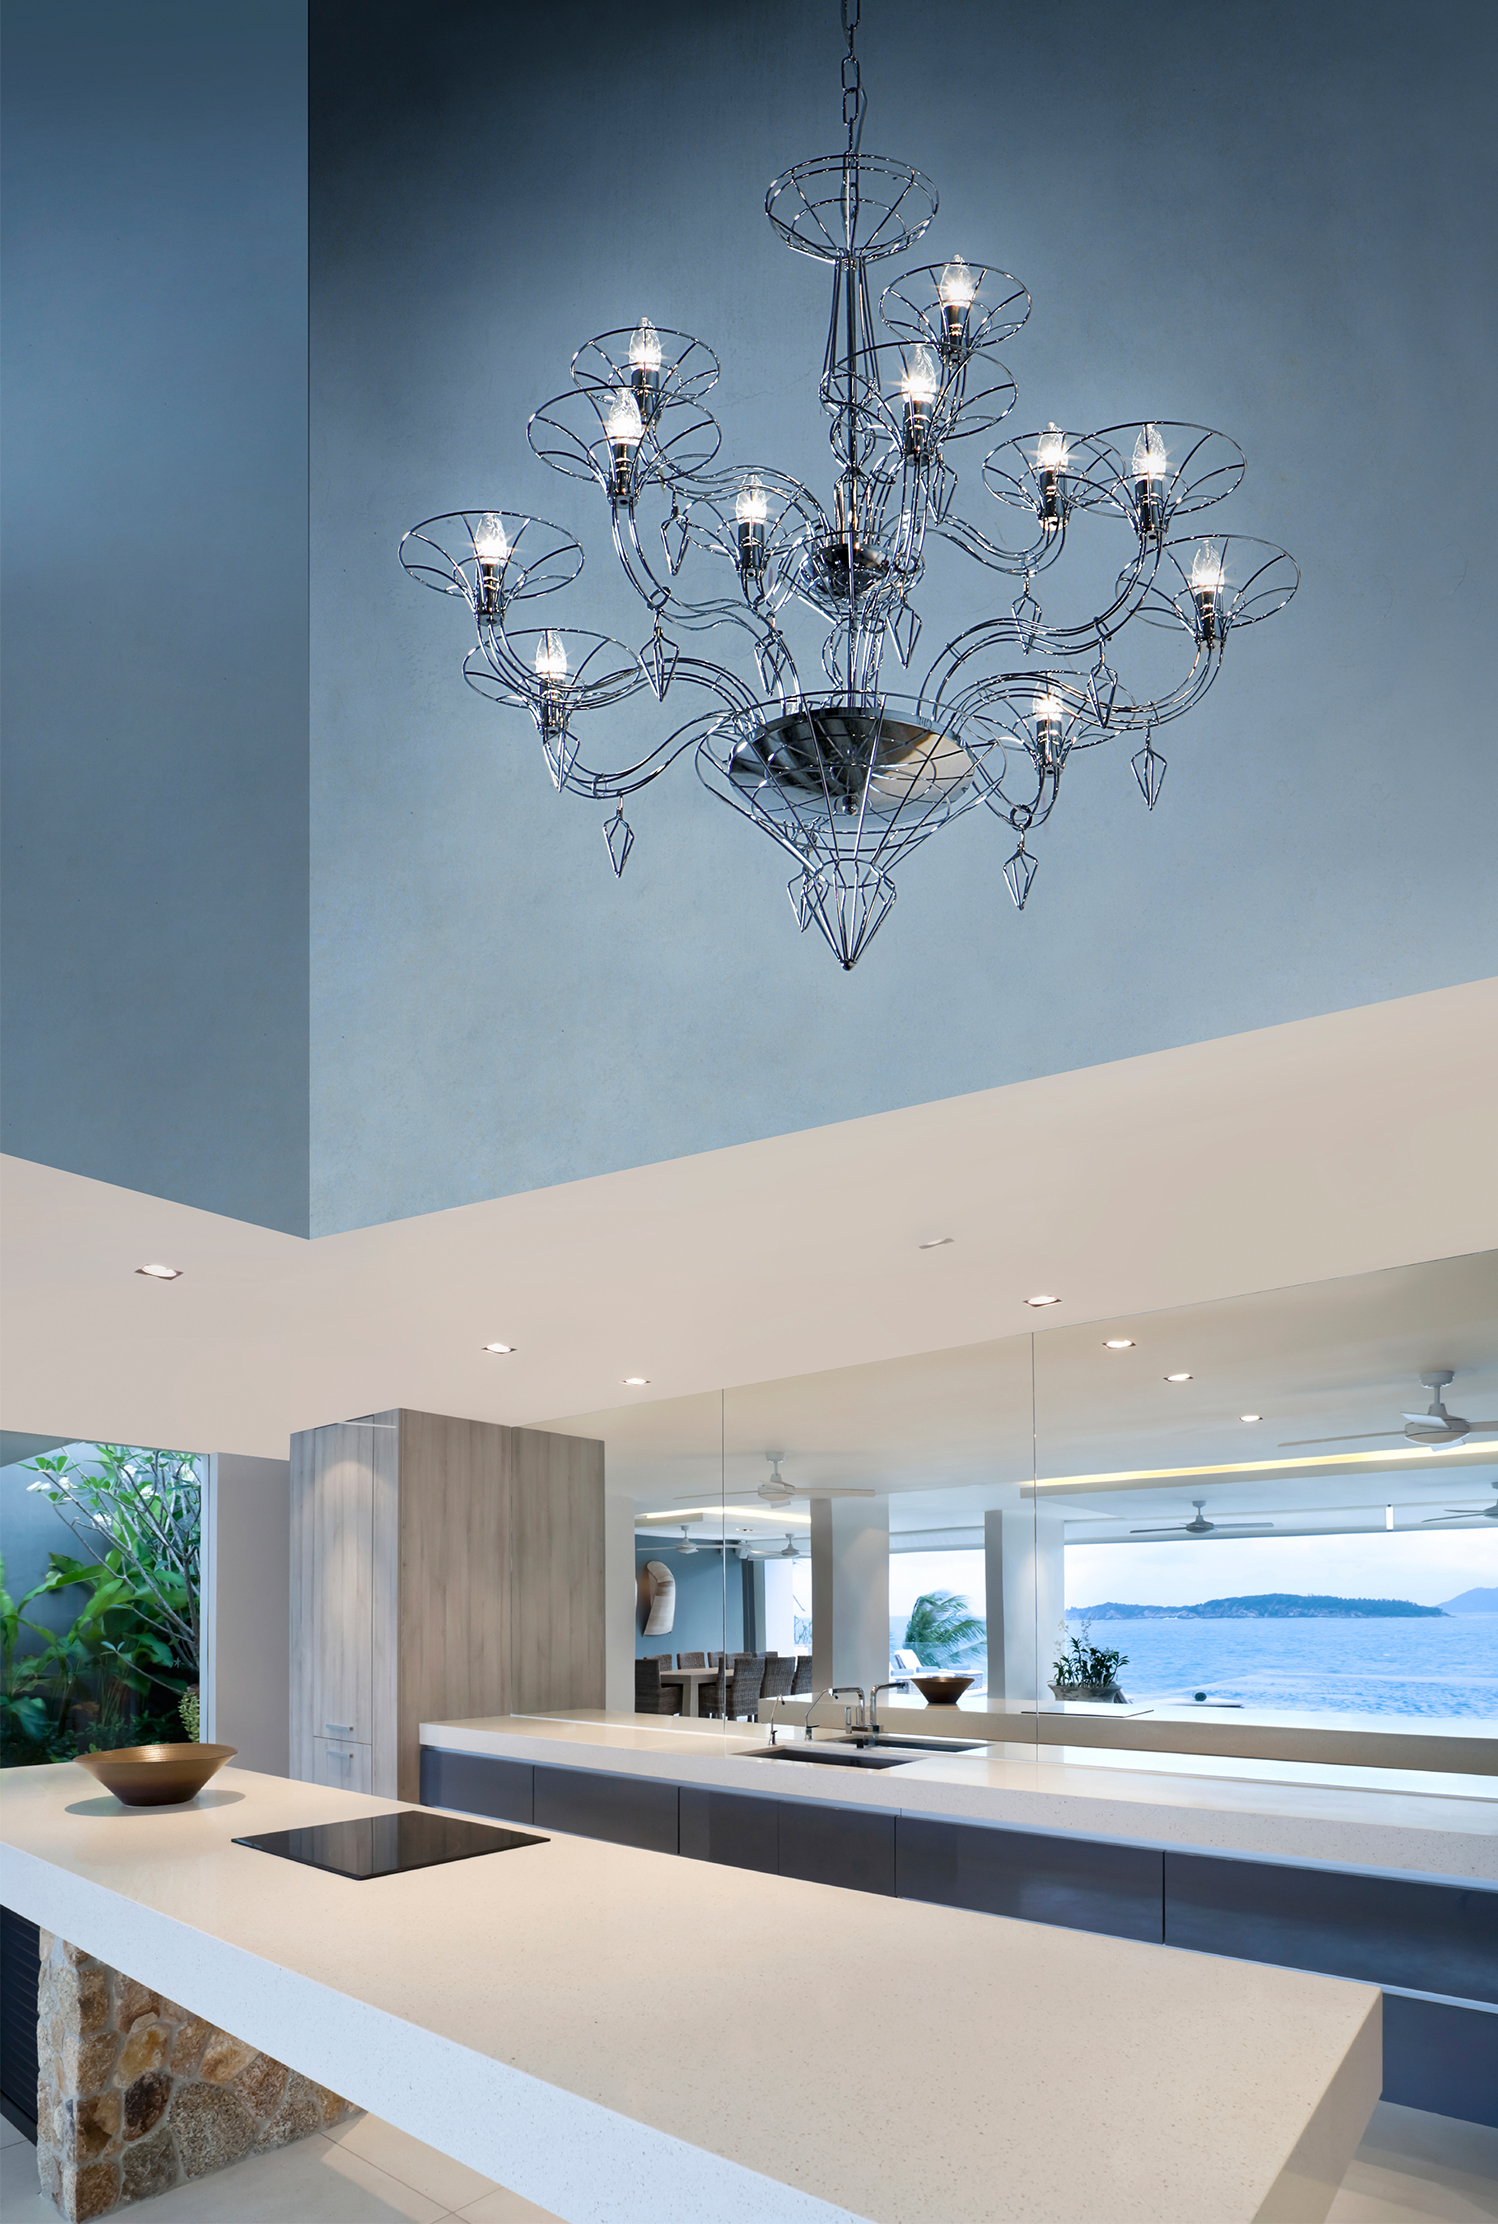 Dedalo is a collection of chandeliers that use the glass-blowing technologies from the Venetian island of Murano.